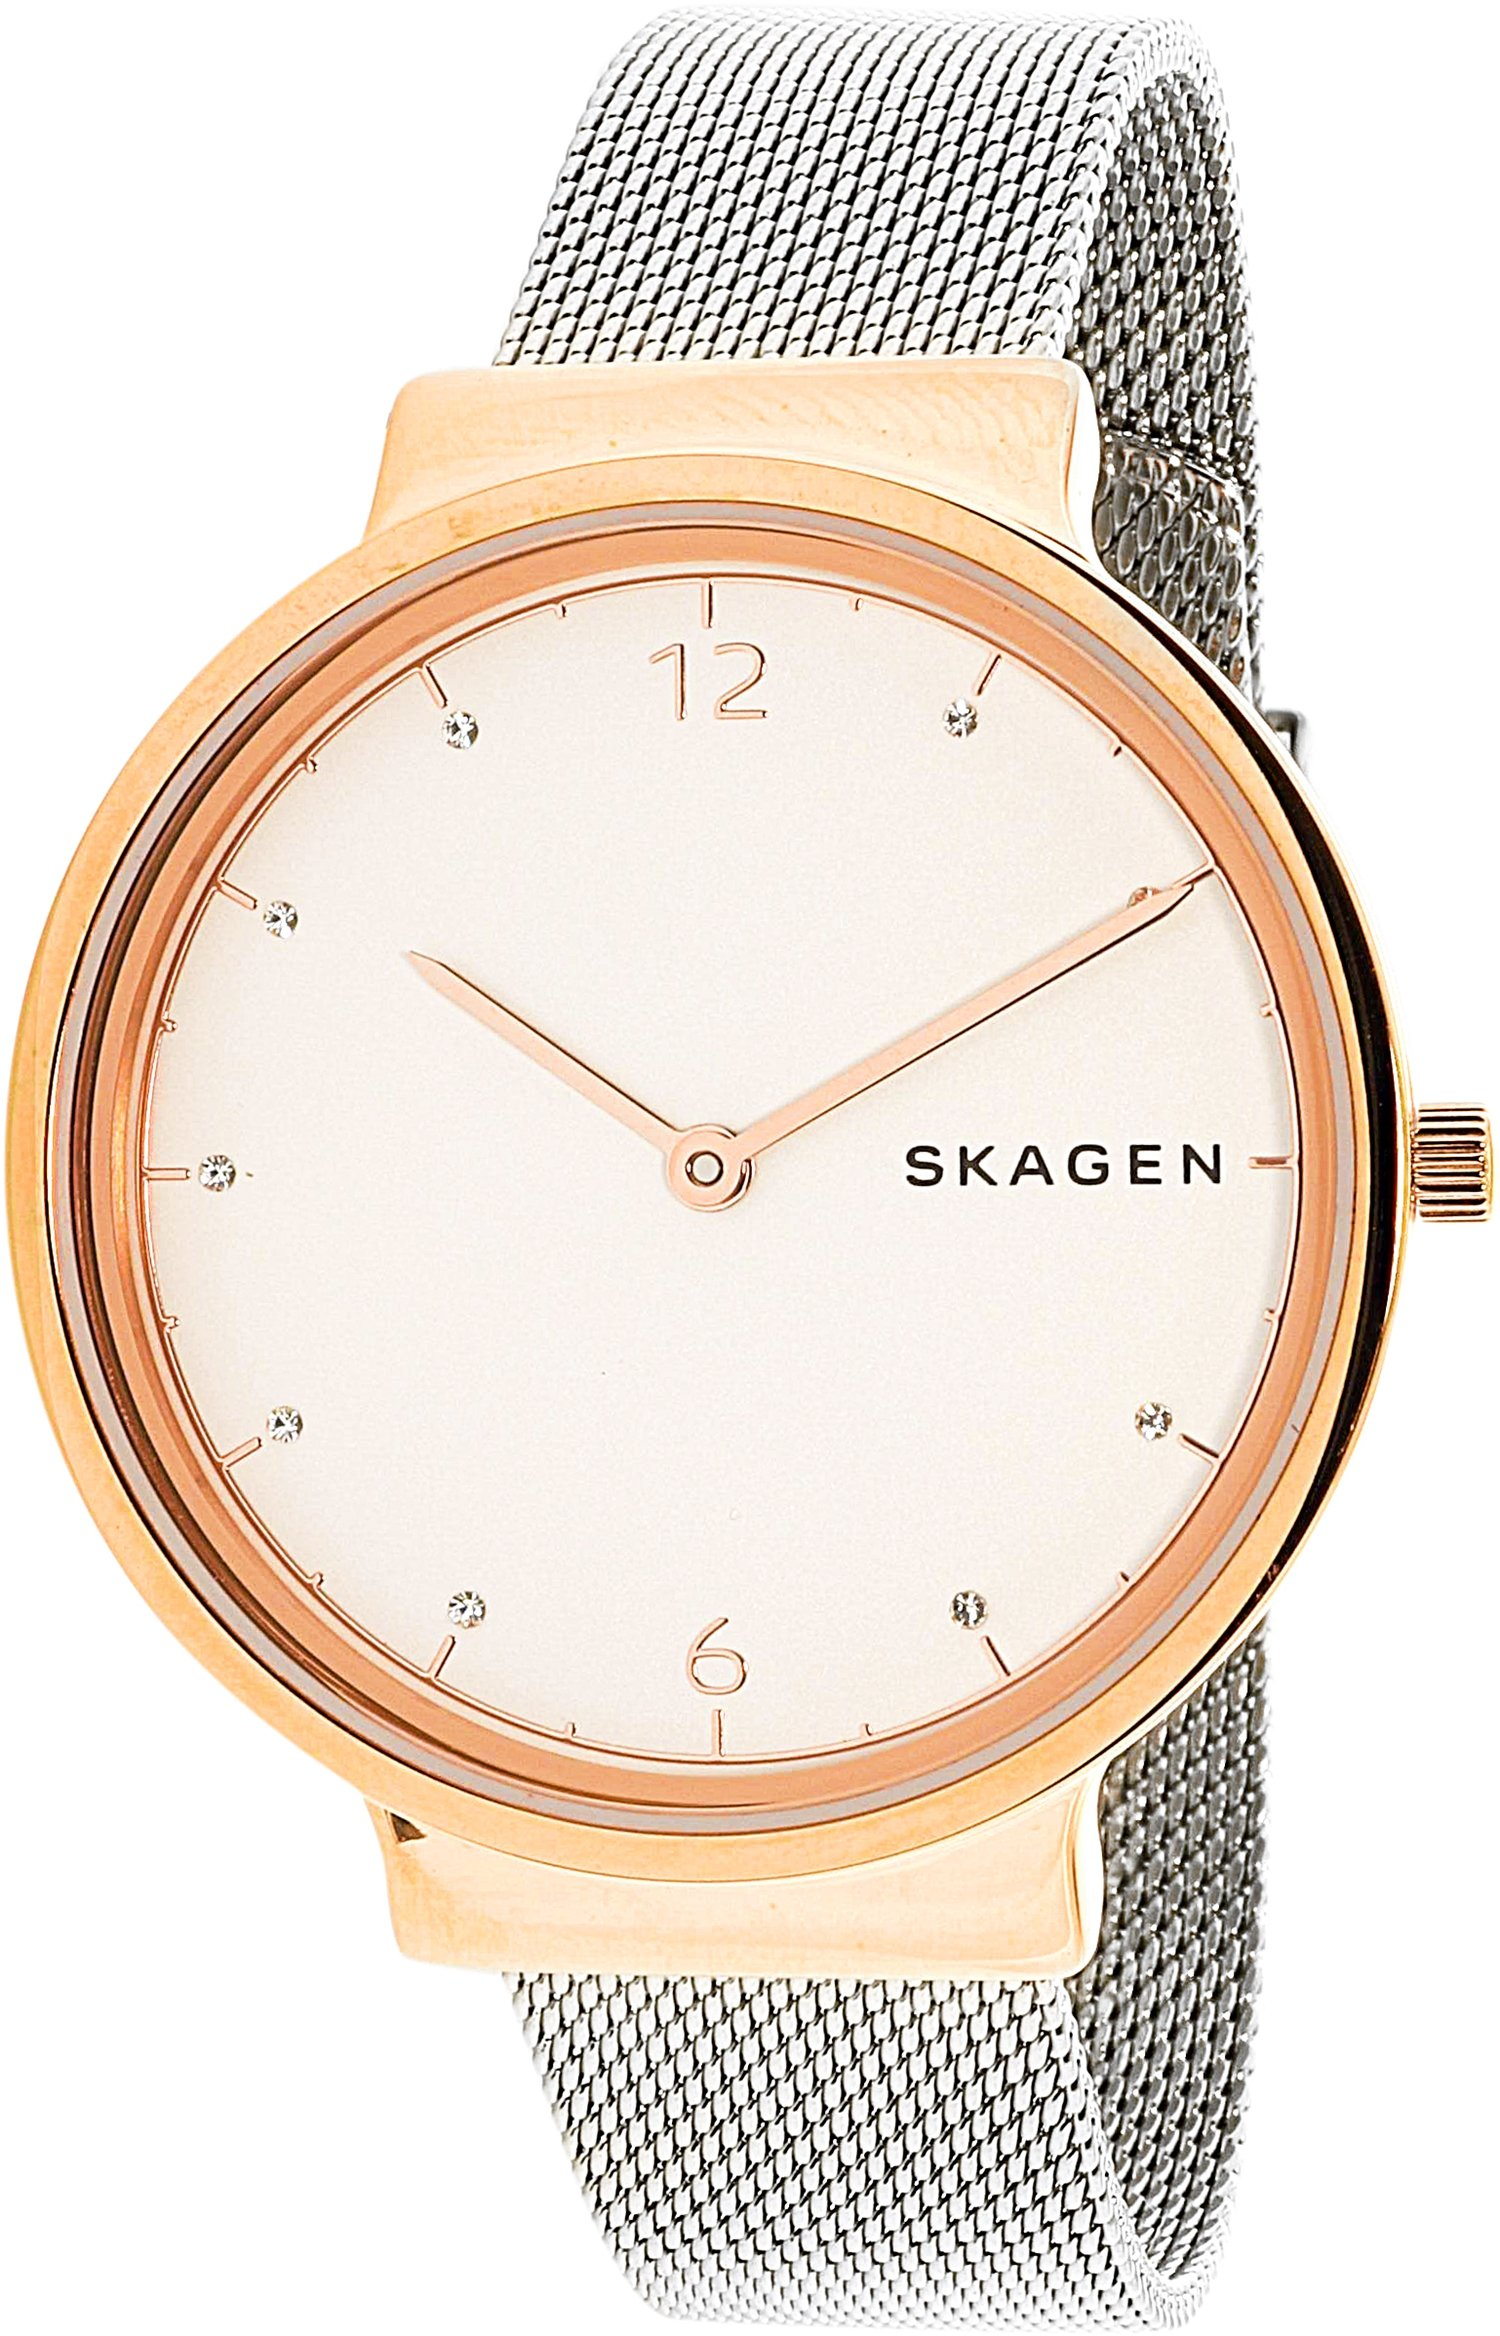 Skagen  Women's  SKW1086 Ancher Steel-Mesh Watch and Katrine Necklace Box Set by Skagen